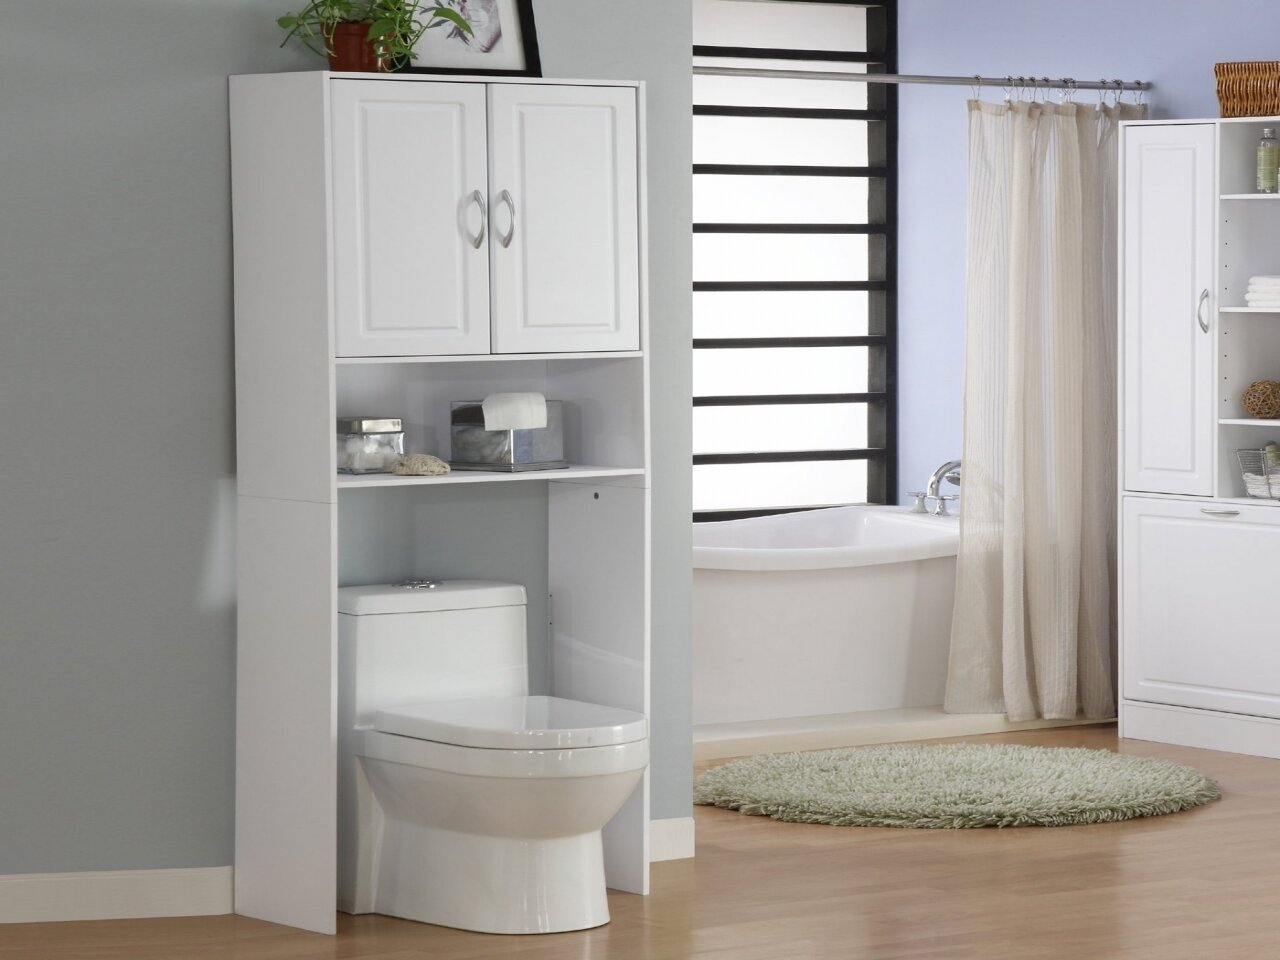 over the toilet storage ikea shelves in bathroom ideas bathroom shelf designs bathroom shelf. Black Bedroom Furniture Sets. Home Design Ideas